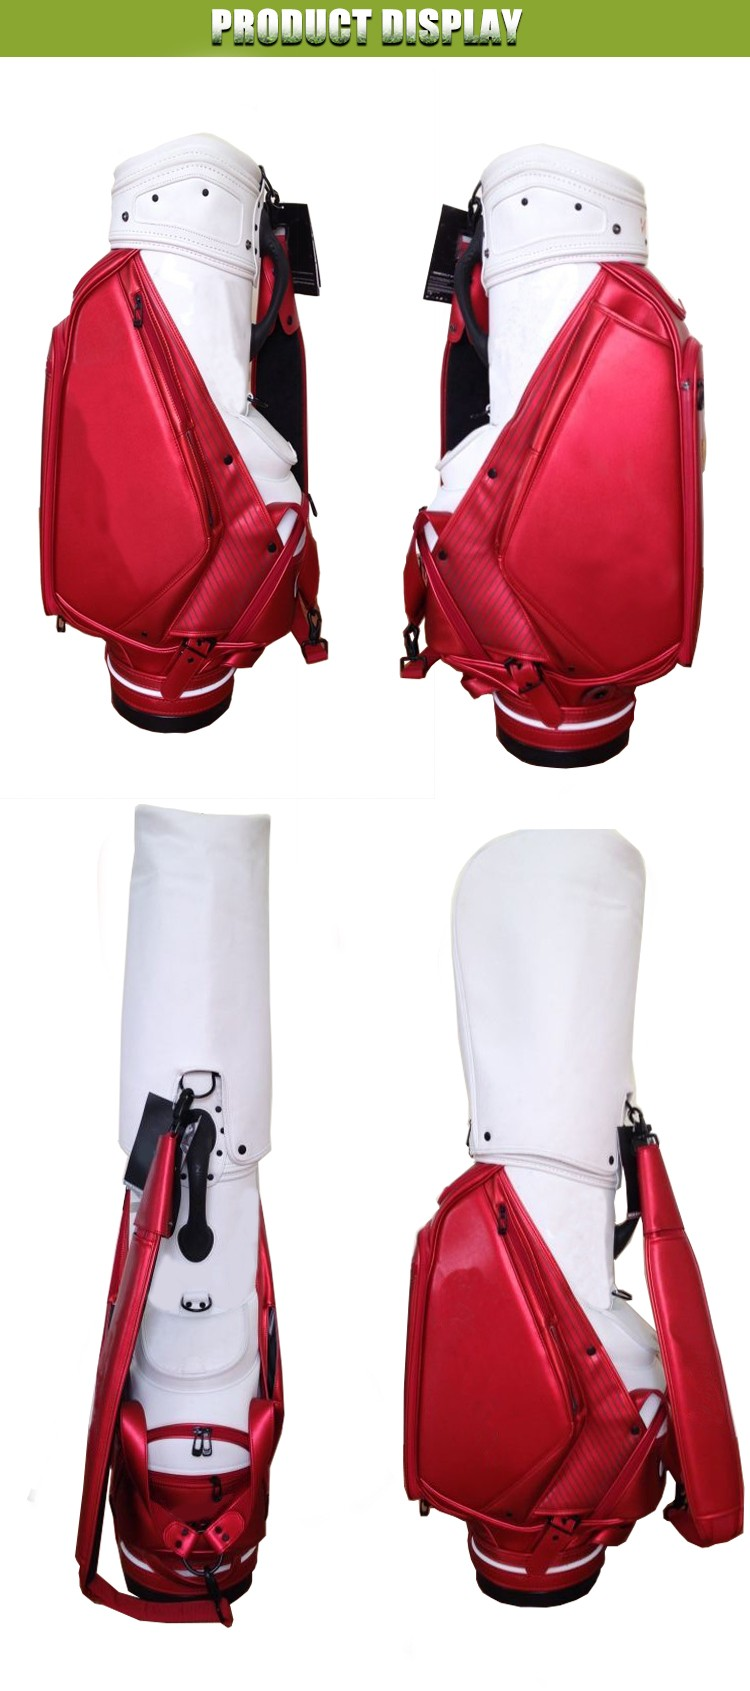 OEM/ODM Waterproof Custom Golf Bag PU leather Golf Cart Bag With Factory Price